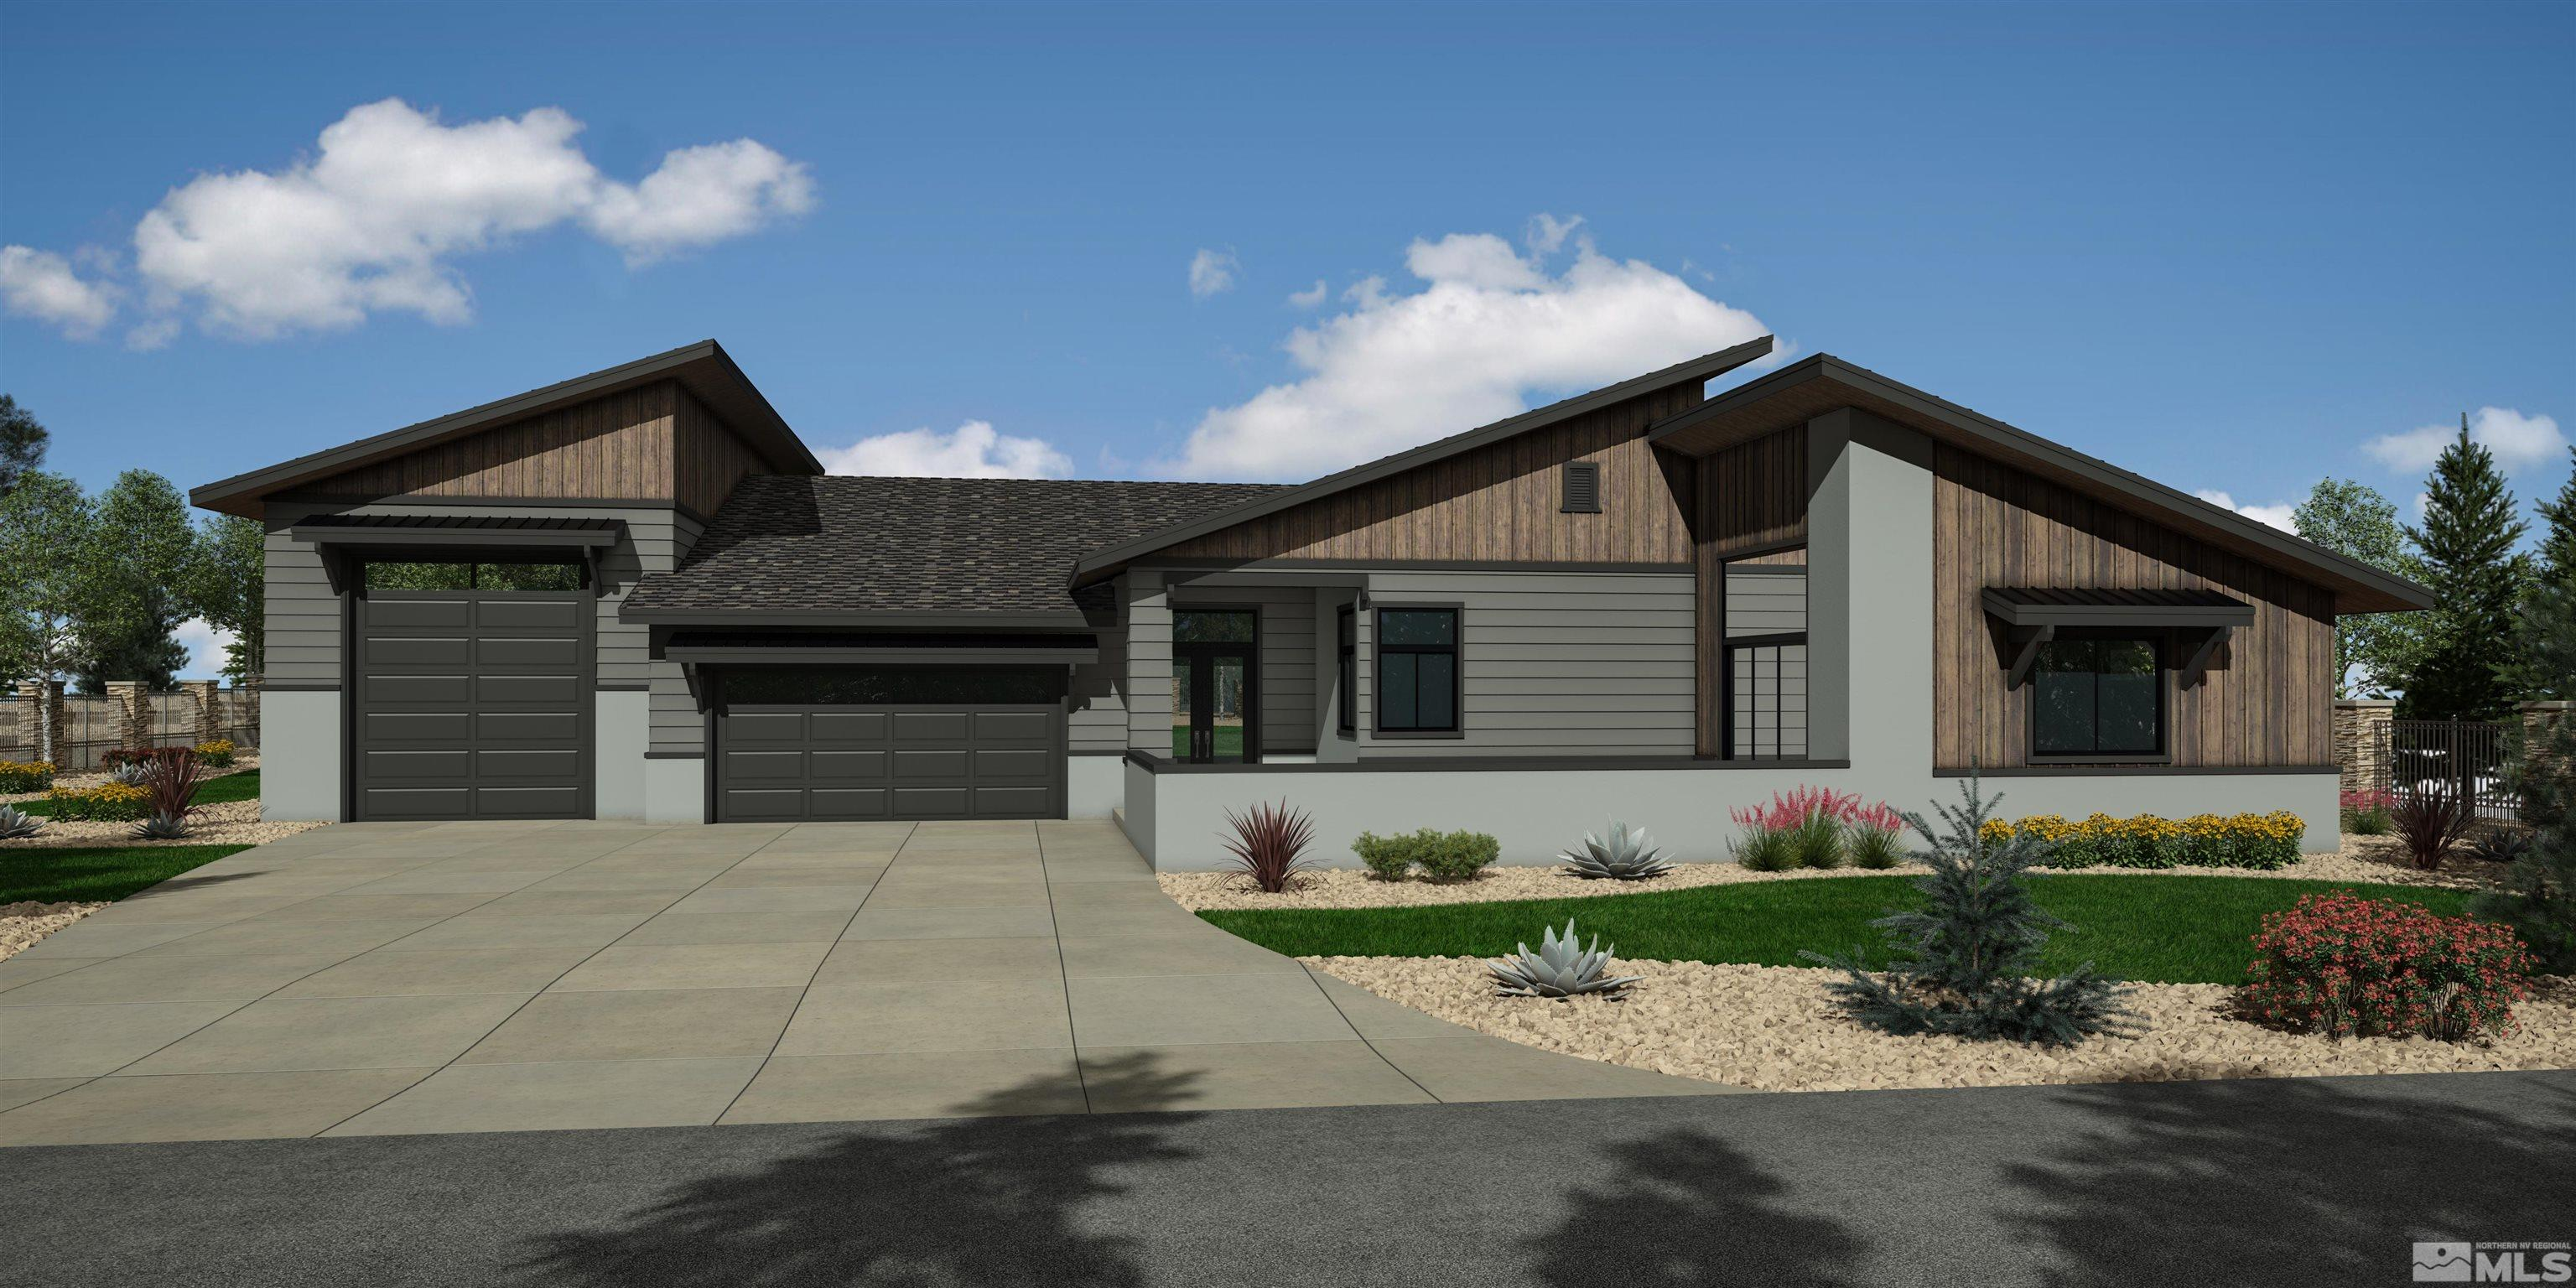 Image for 5375 Mountain Creek Ct., Reno, NV 89511